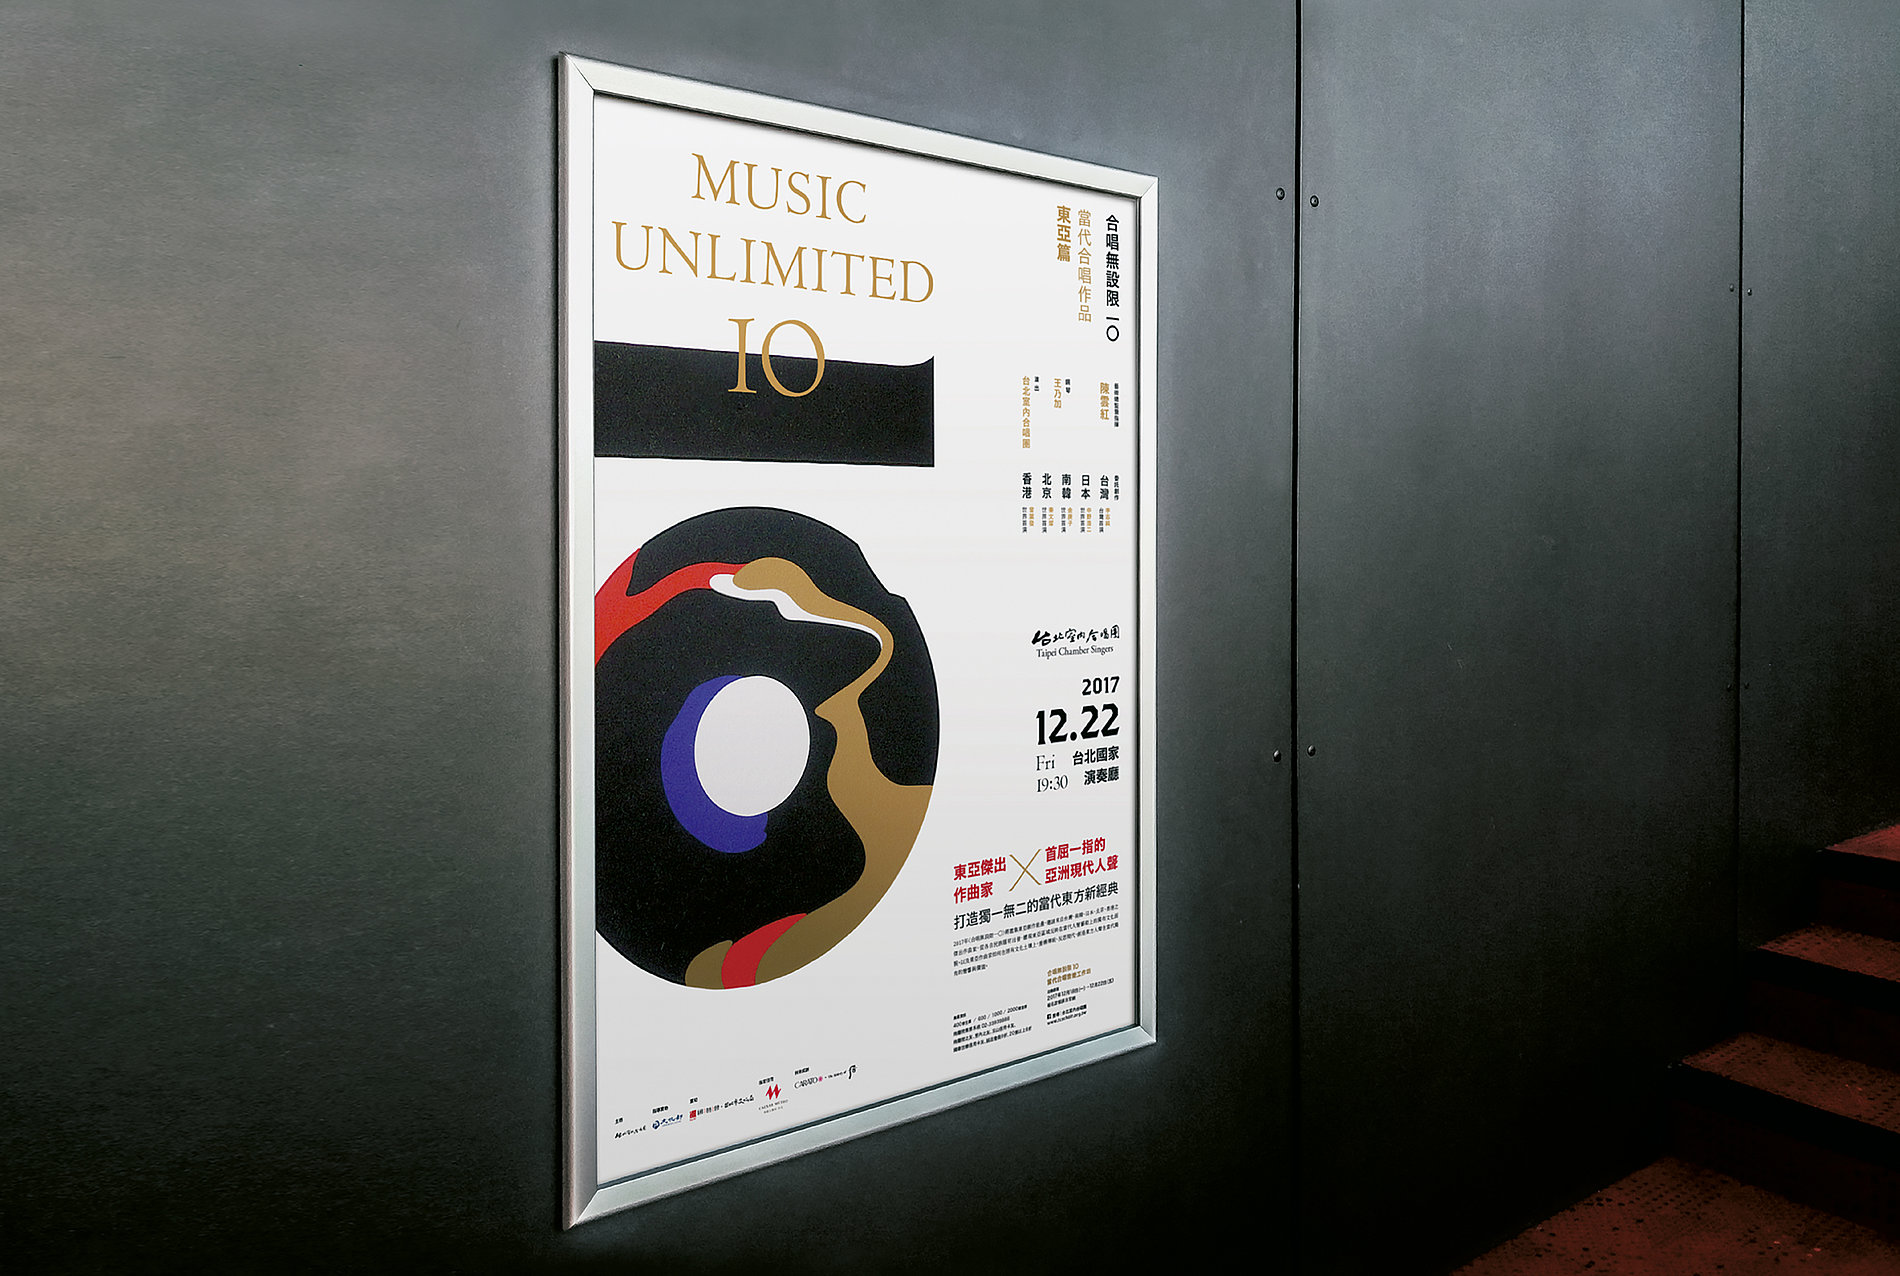 Music Unlimited 10 | Red Dot Design Award